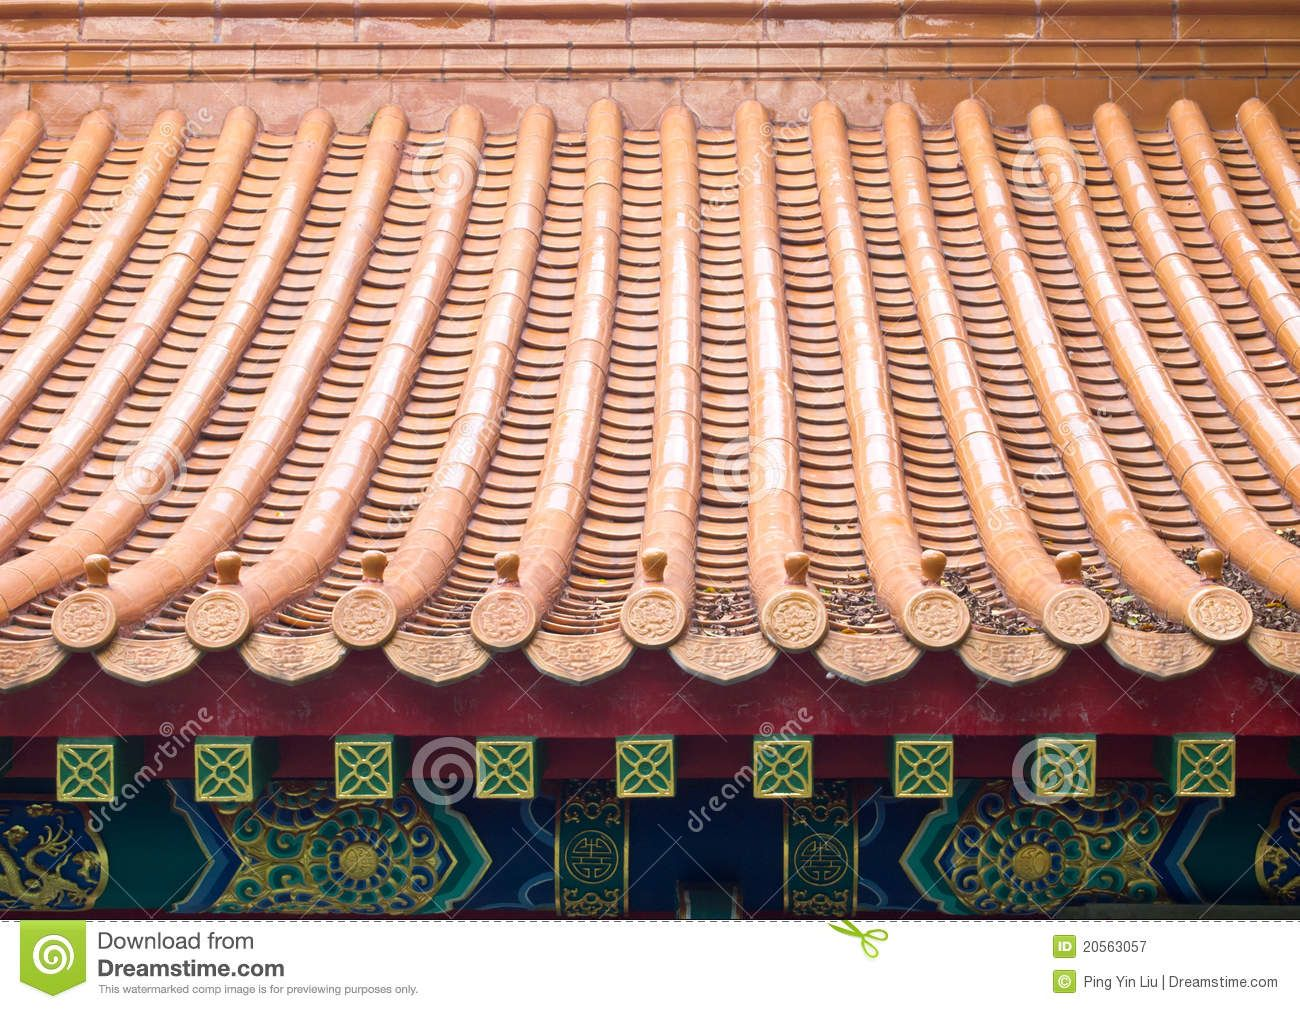 Chinese roof tiles 20563057g 13001009 world design photo about ceramic roof tiles of chinese house 20563057 dailygadgetfo Image collections